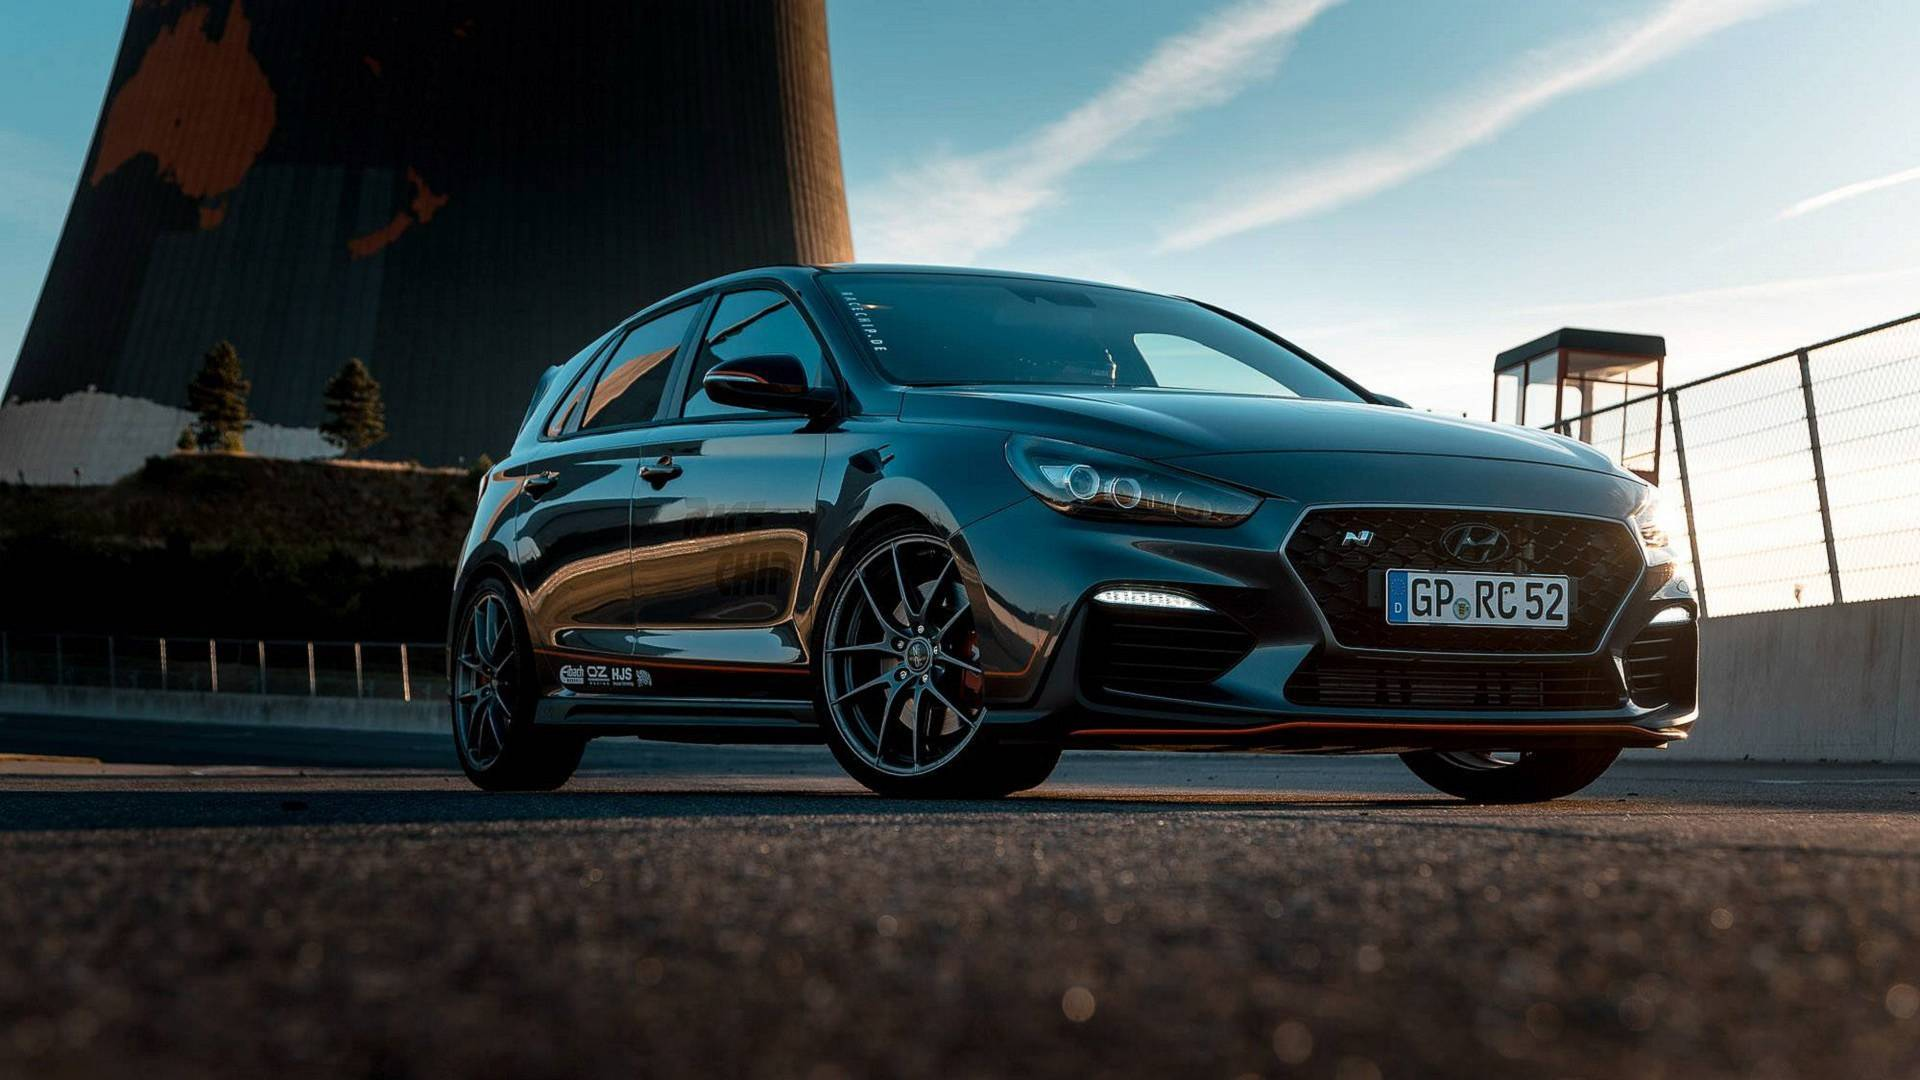 hyundai i30 n tuned by racechip to 320 horsepower. Black Bedroom Furniture Sets. Home Design Ideas